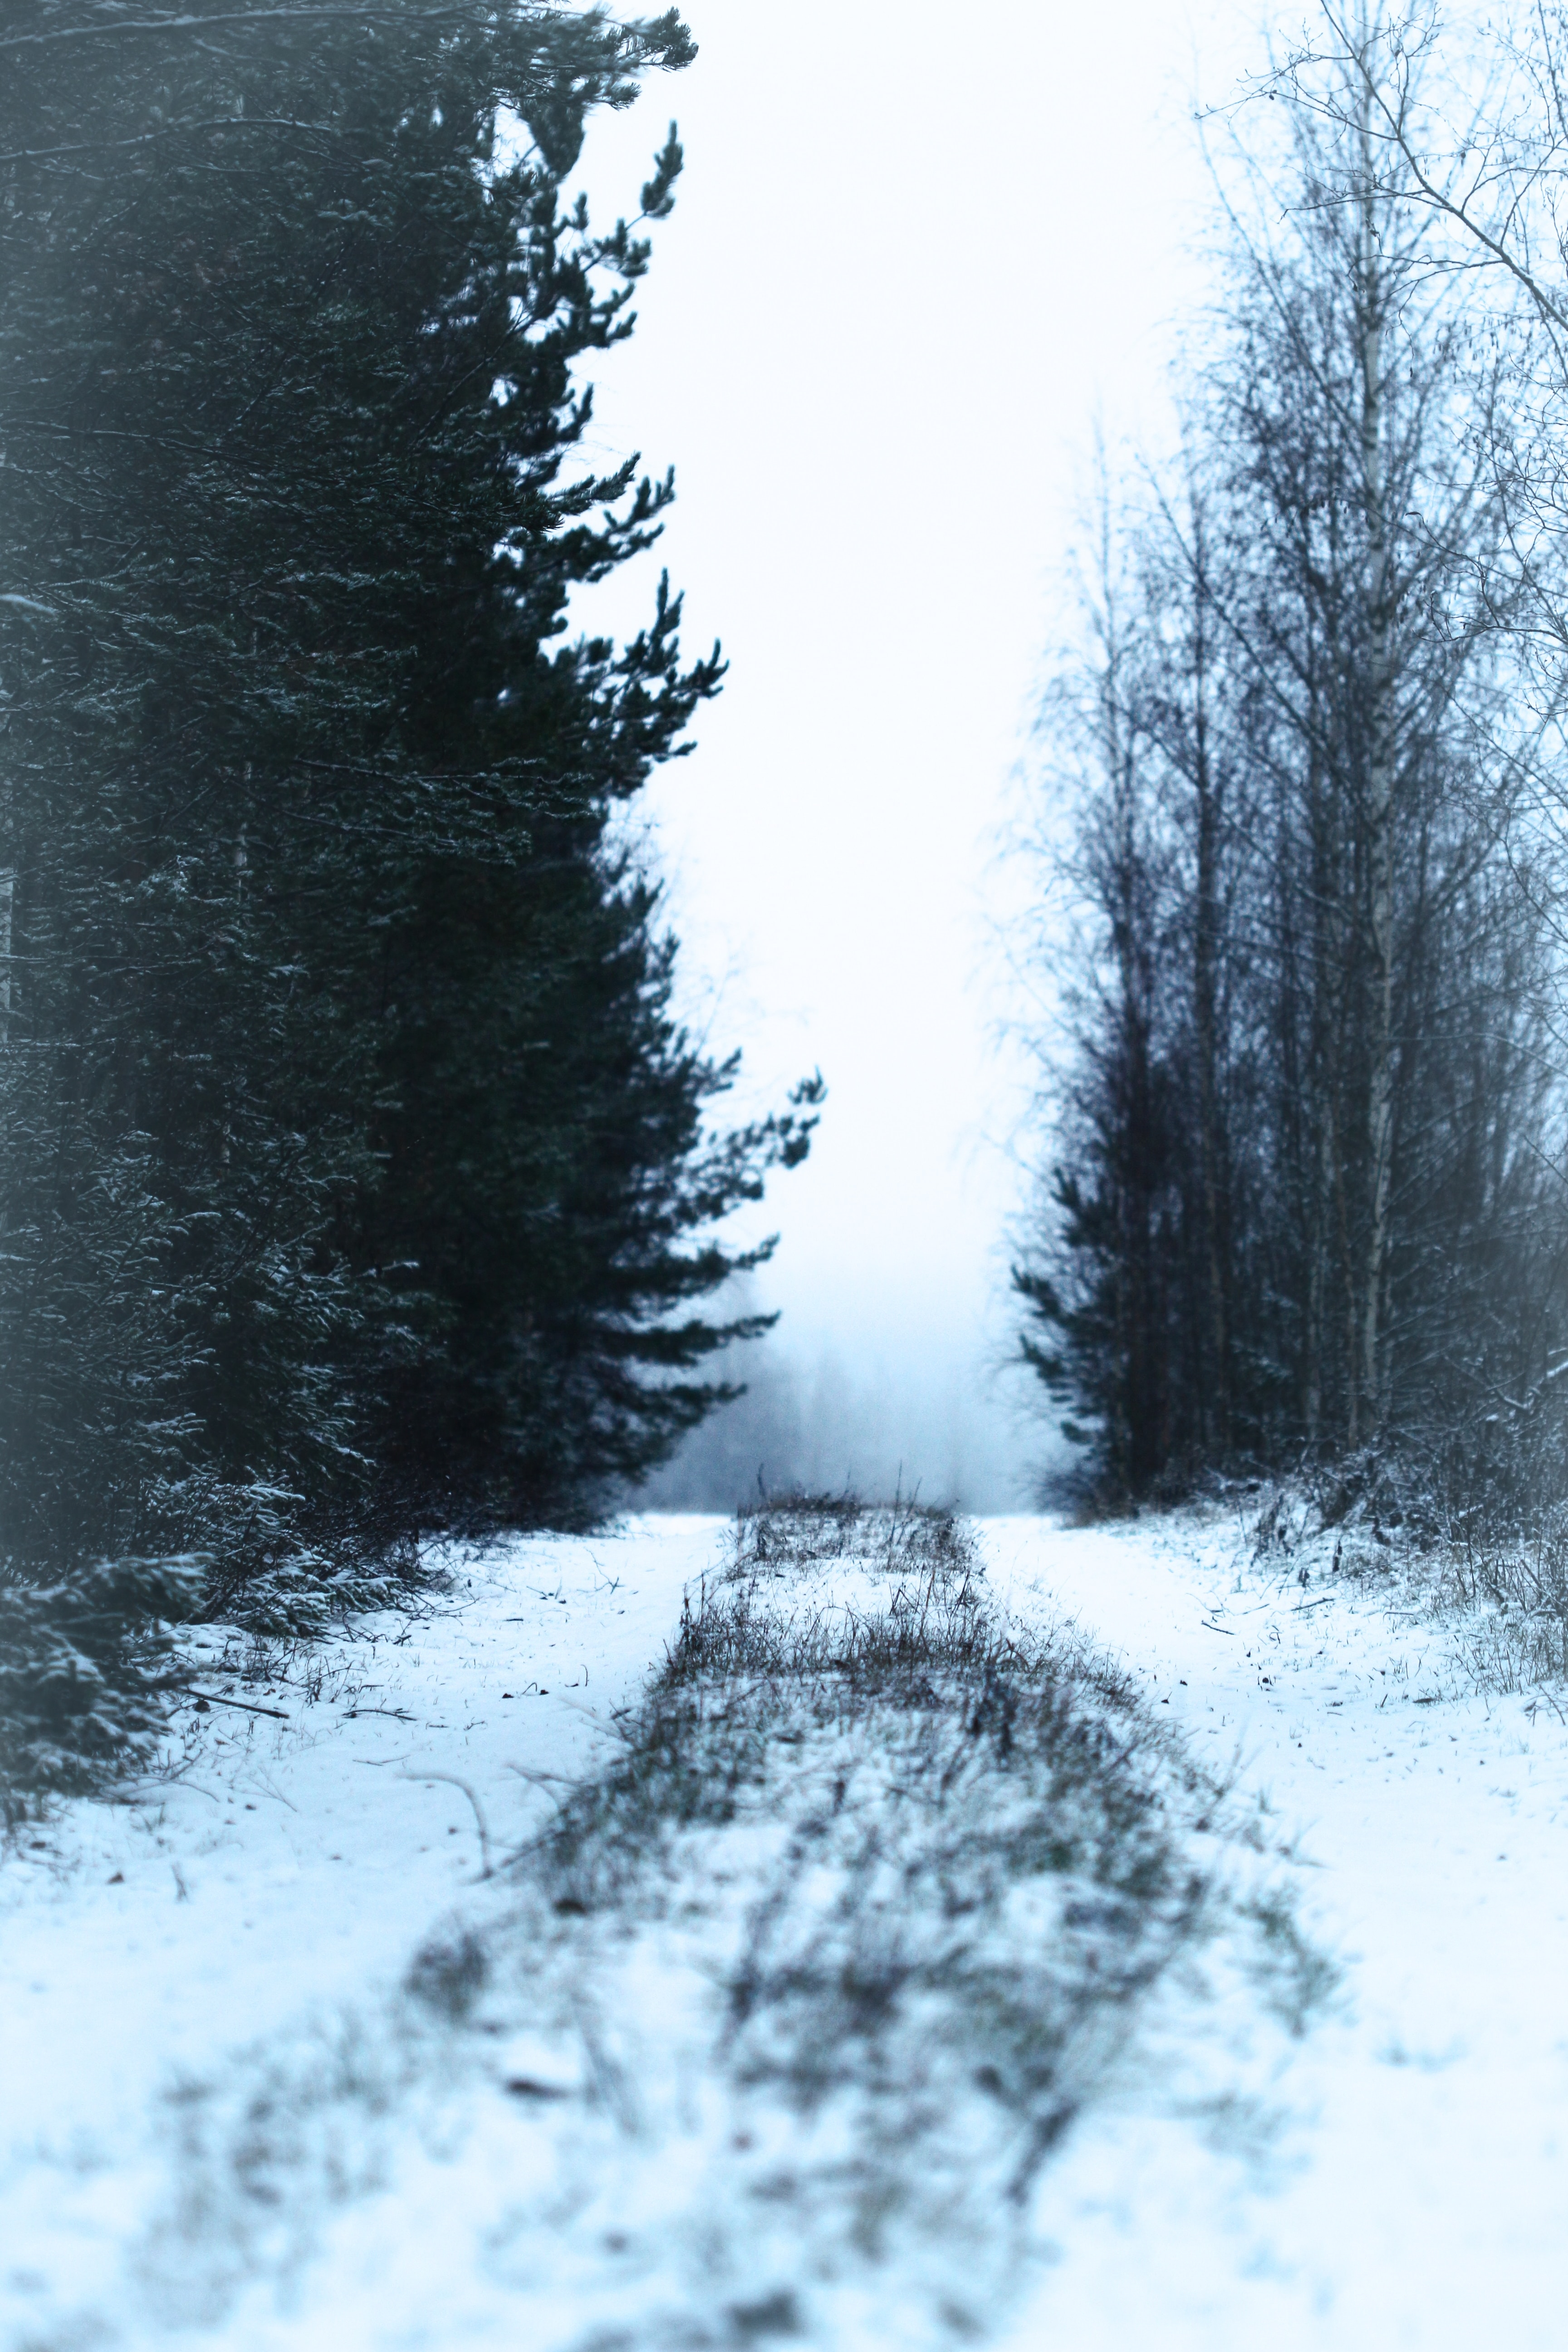 142921 download wallpaper Nature, Road, Forest, Snow, Fog, Winter screensavers and pictures for free